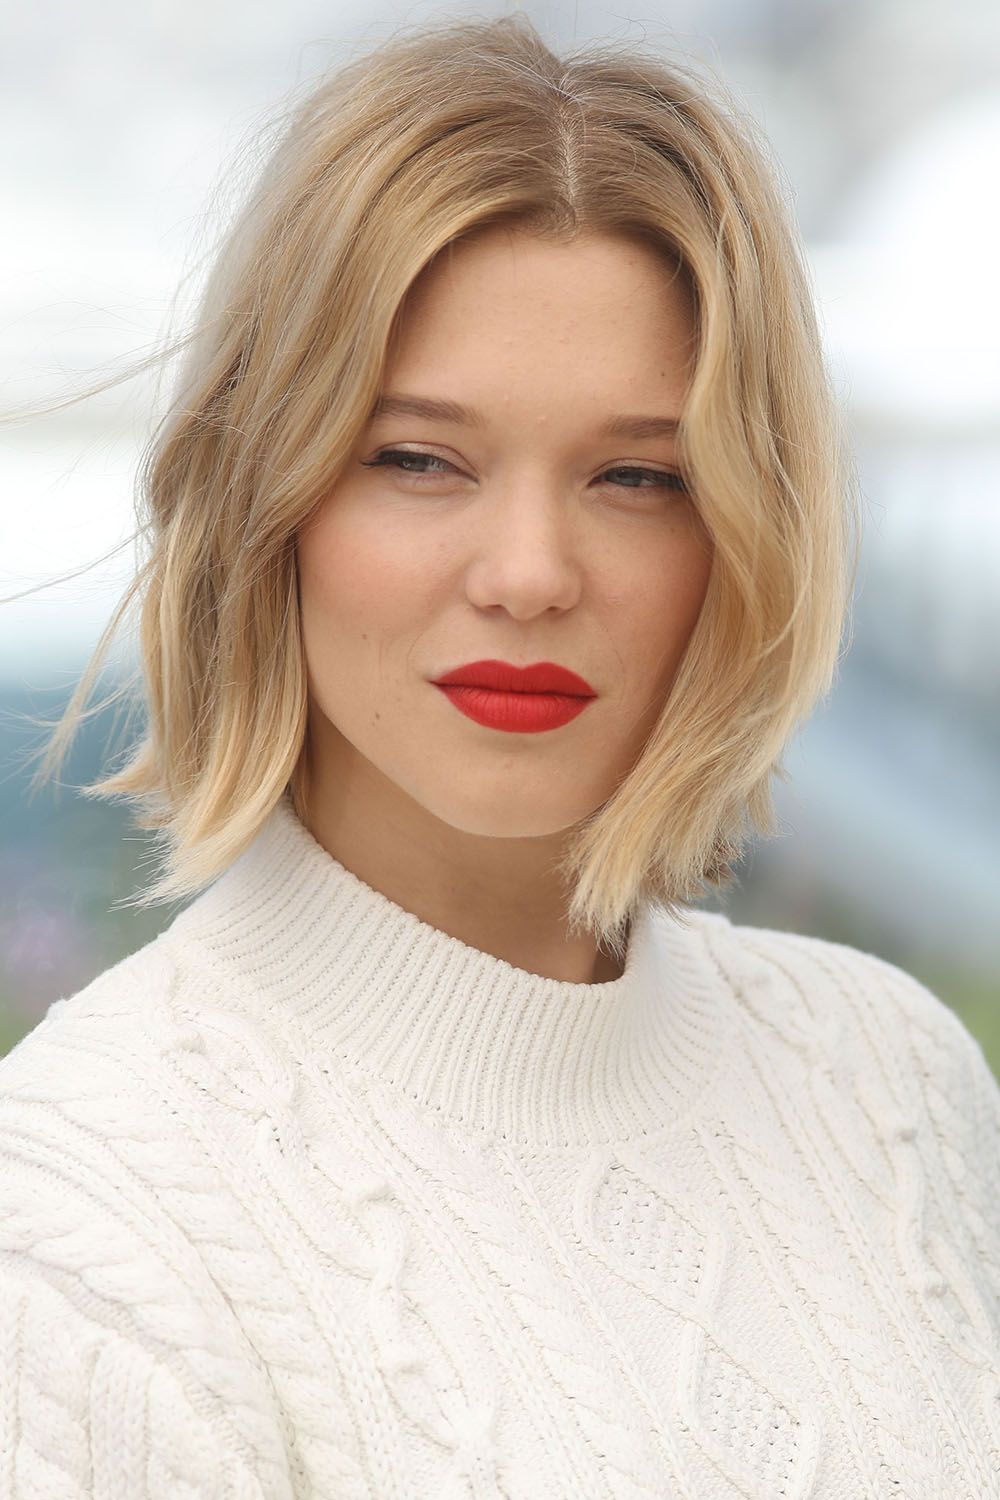 40 awesome short haircuts for curly hair sloe - The Top 40 Celebrity Bob Lob Haircuts